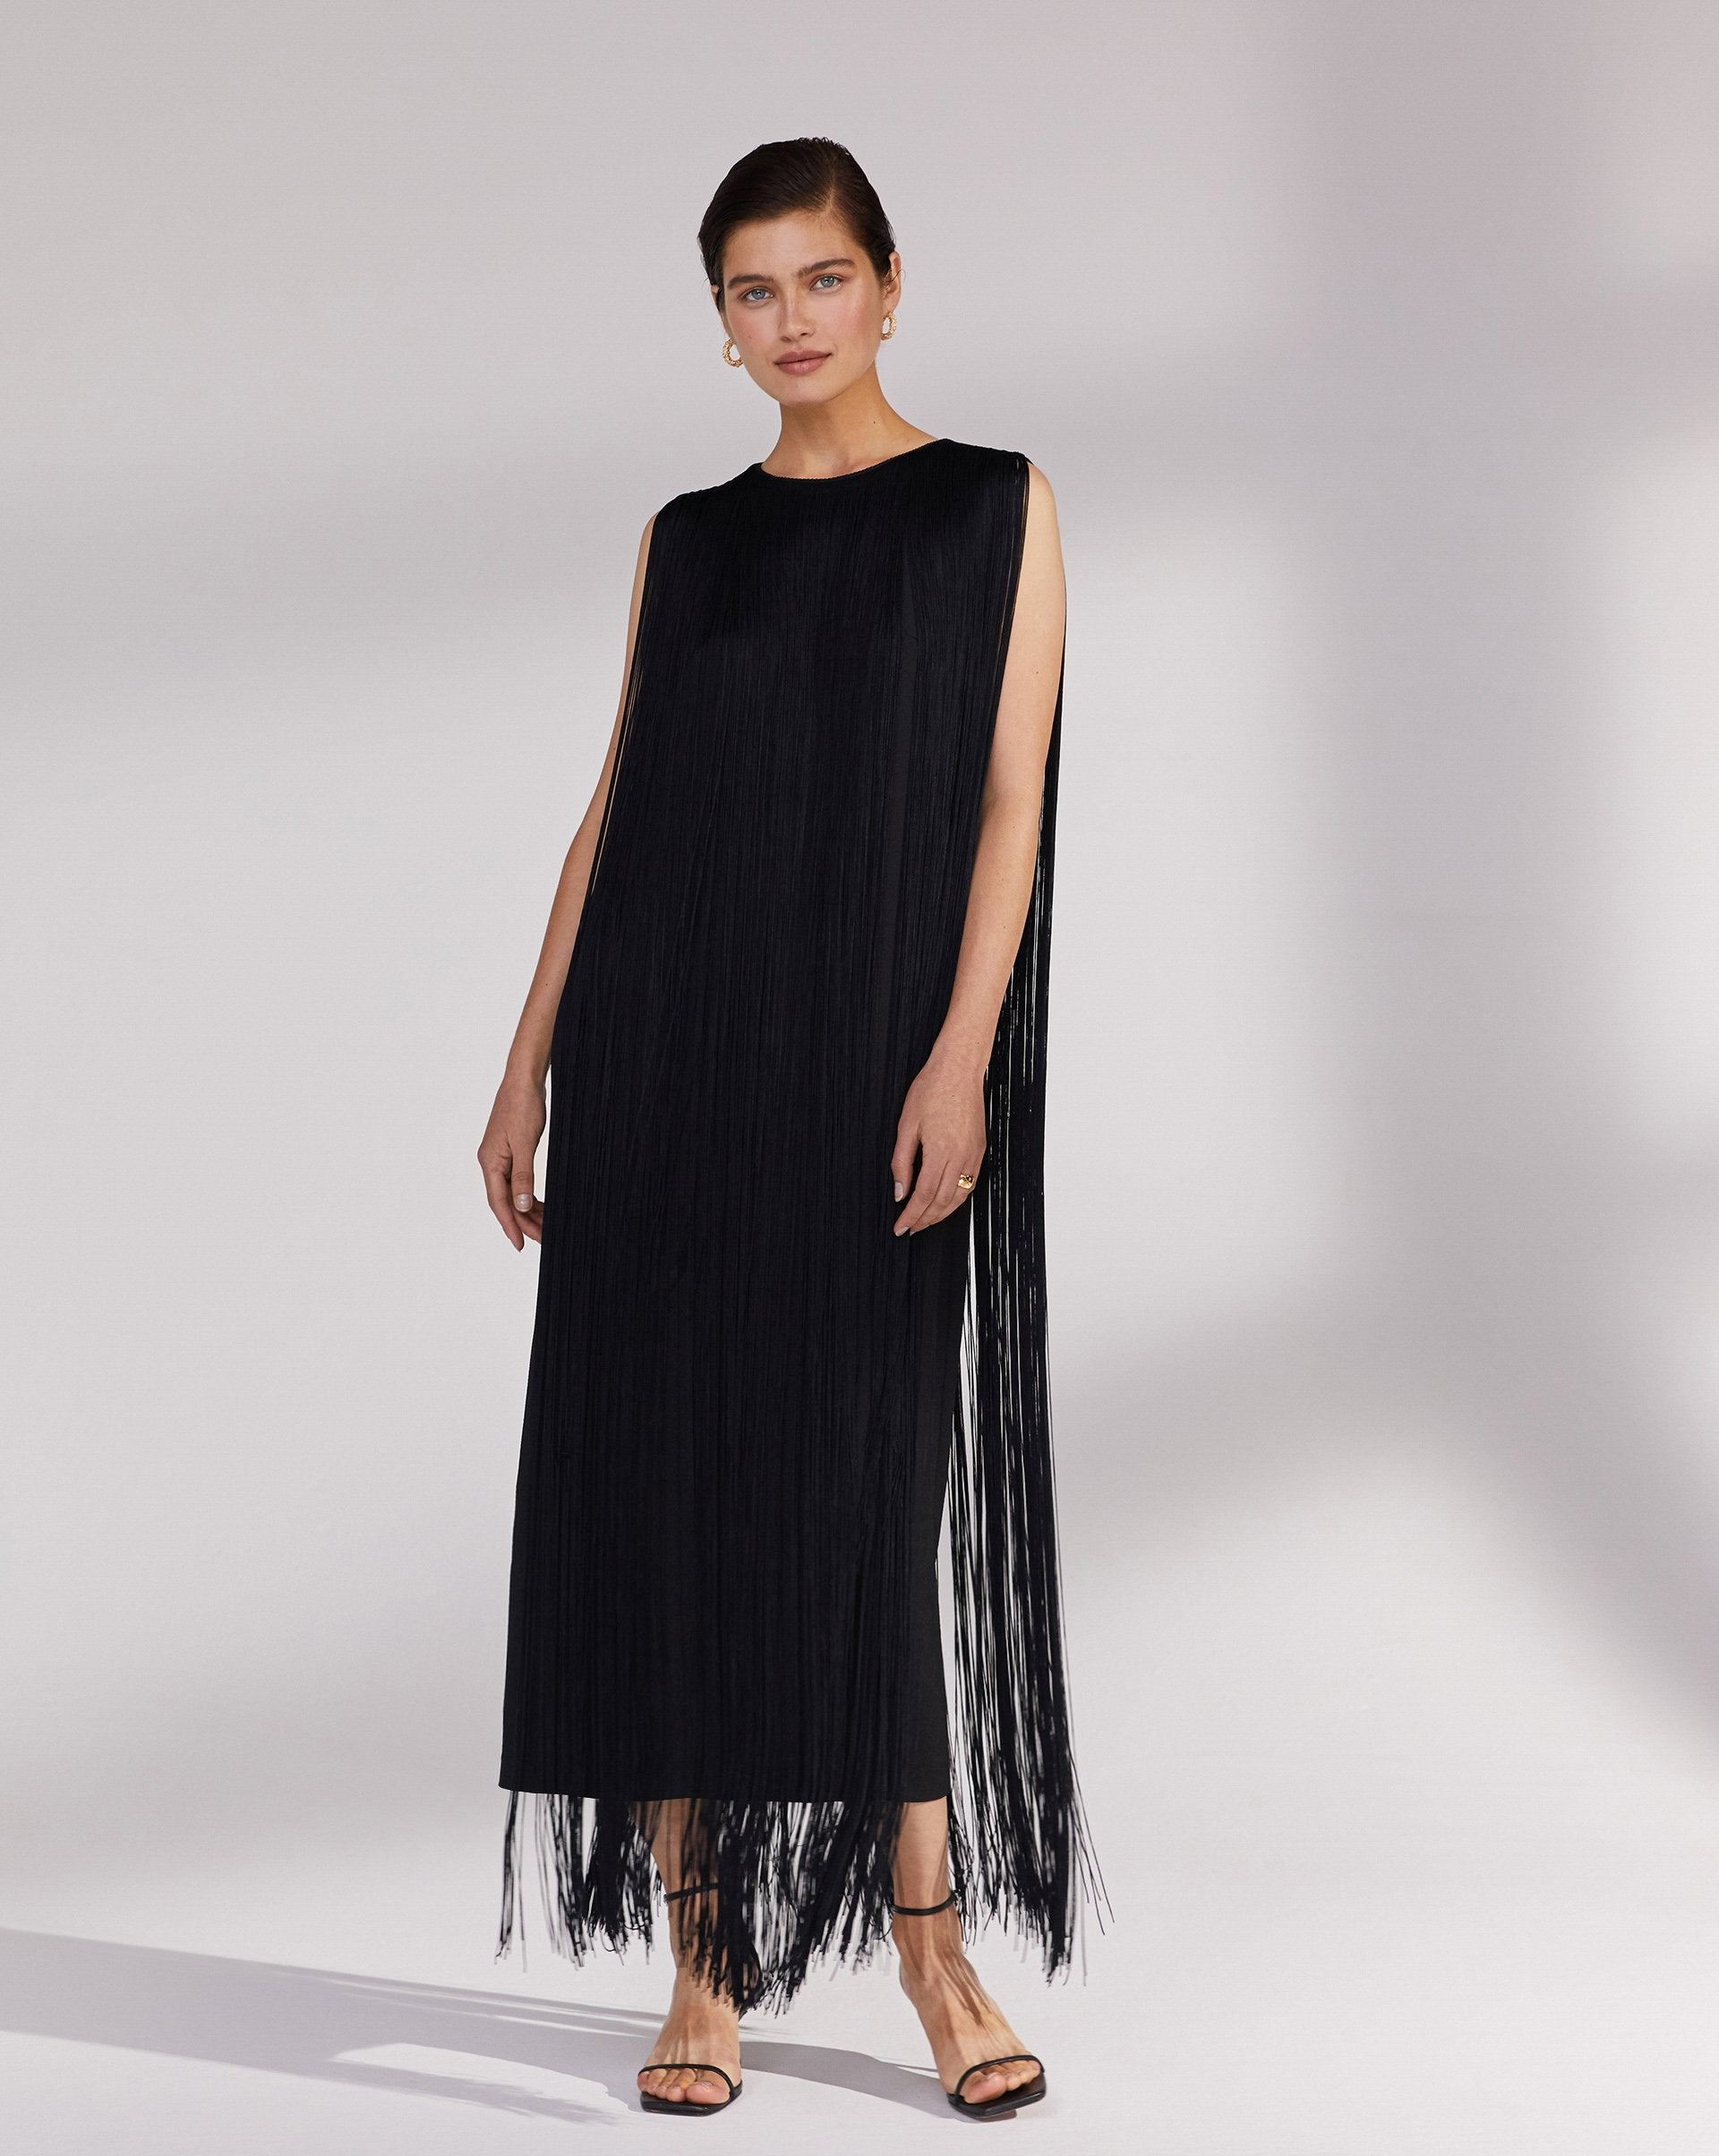 Fringe midi dress - 12 STOREEZ